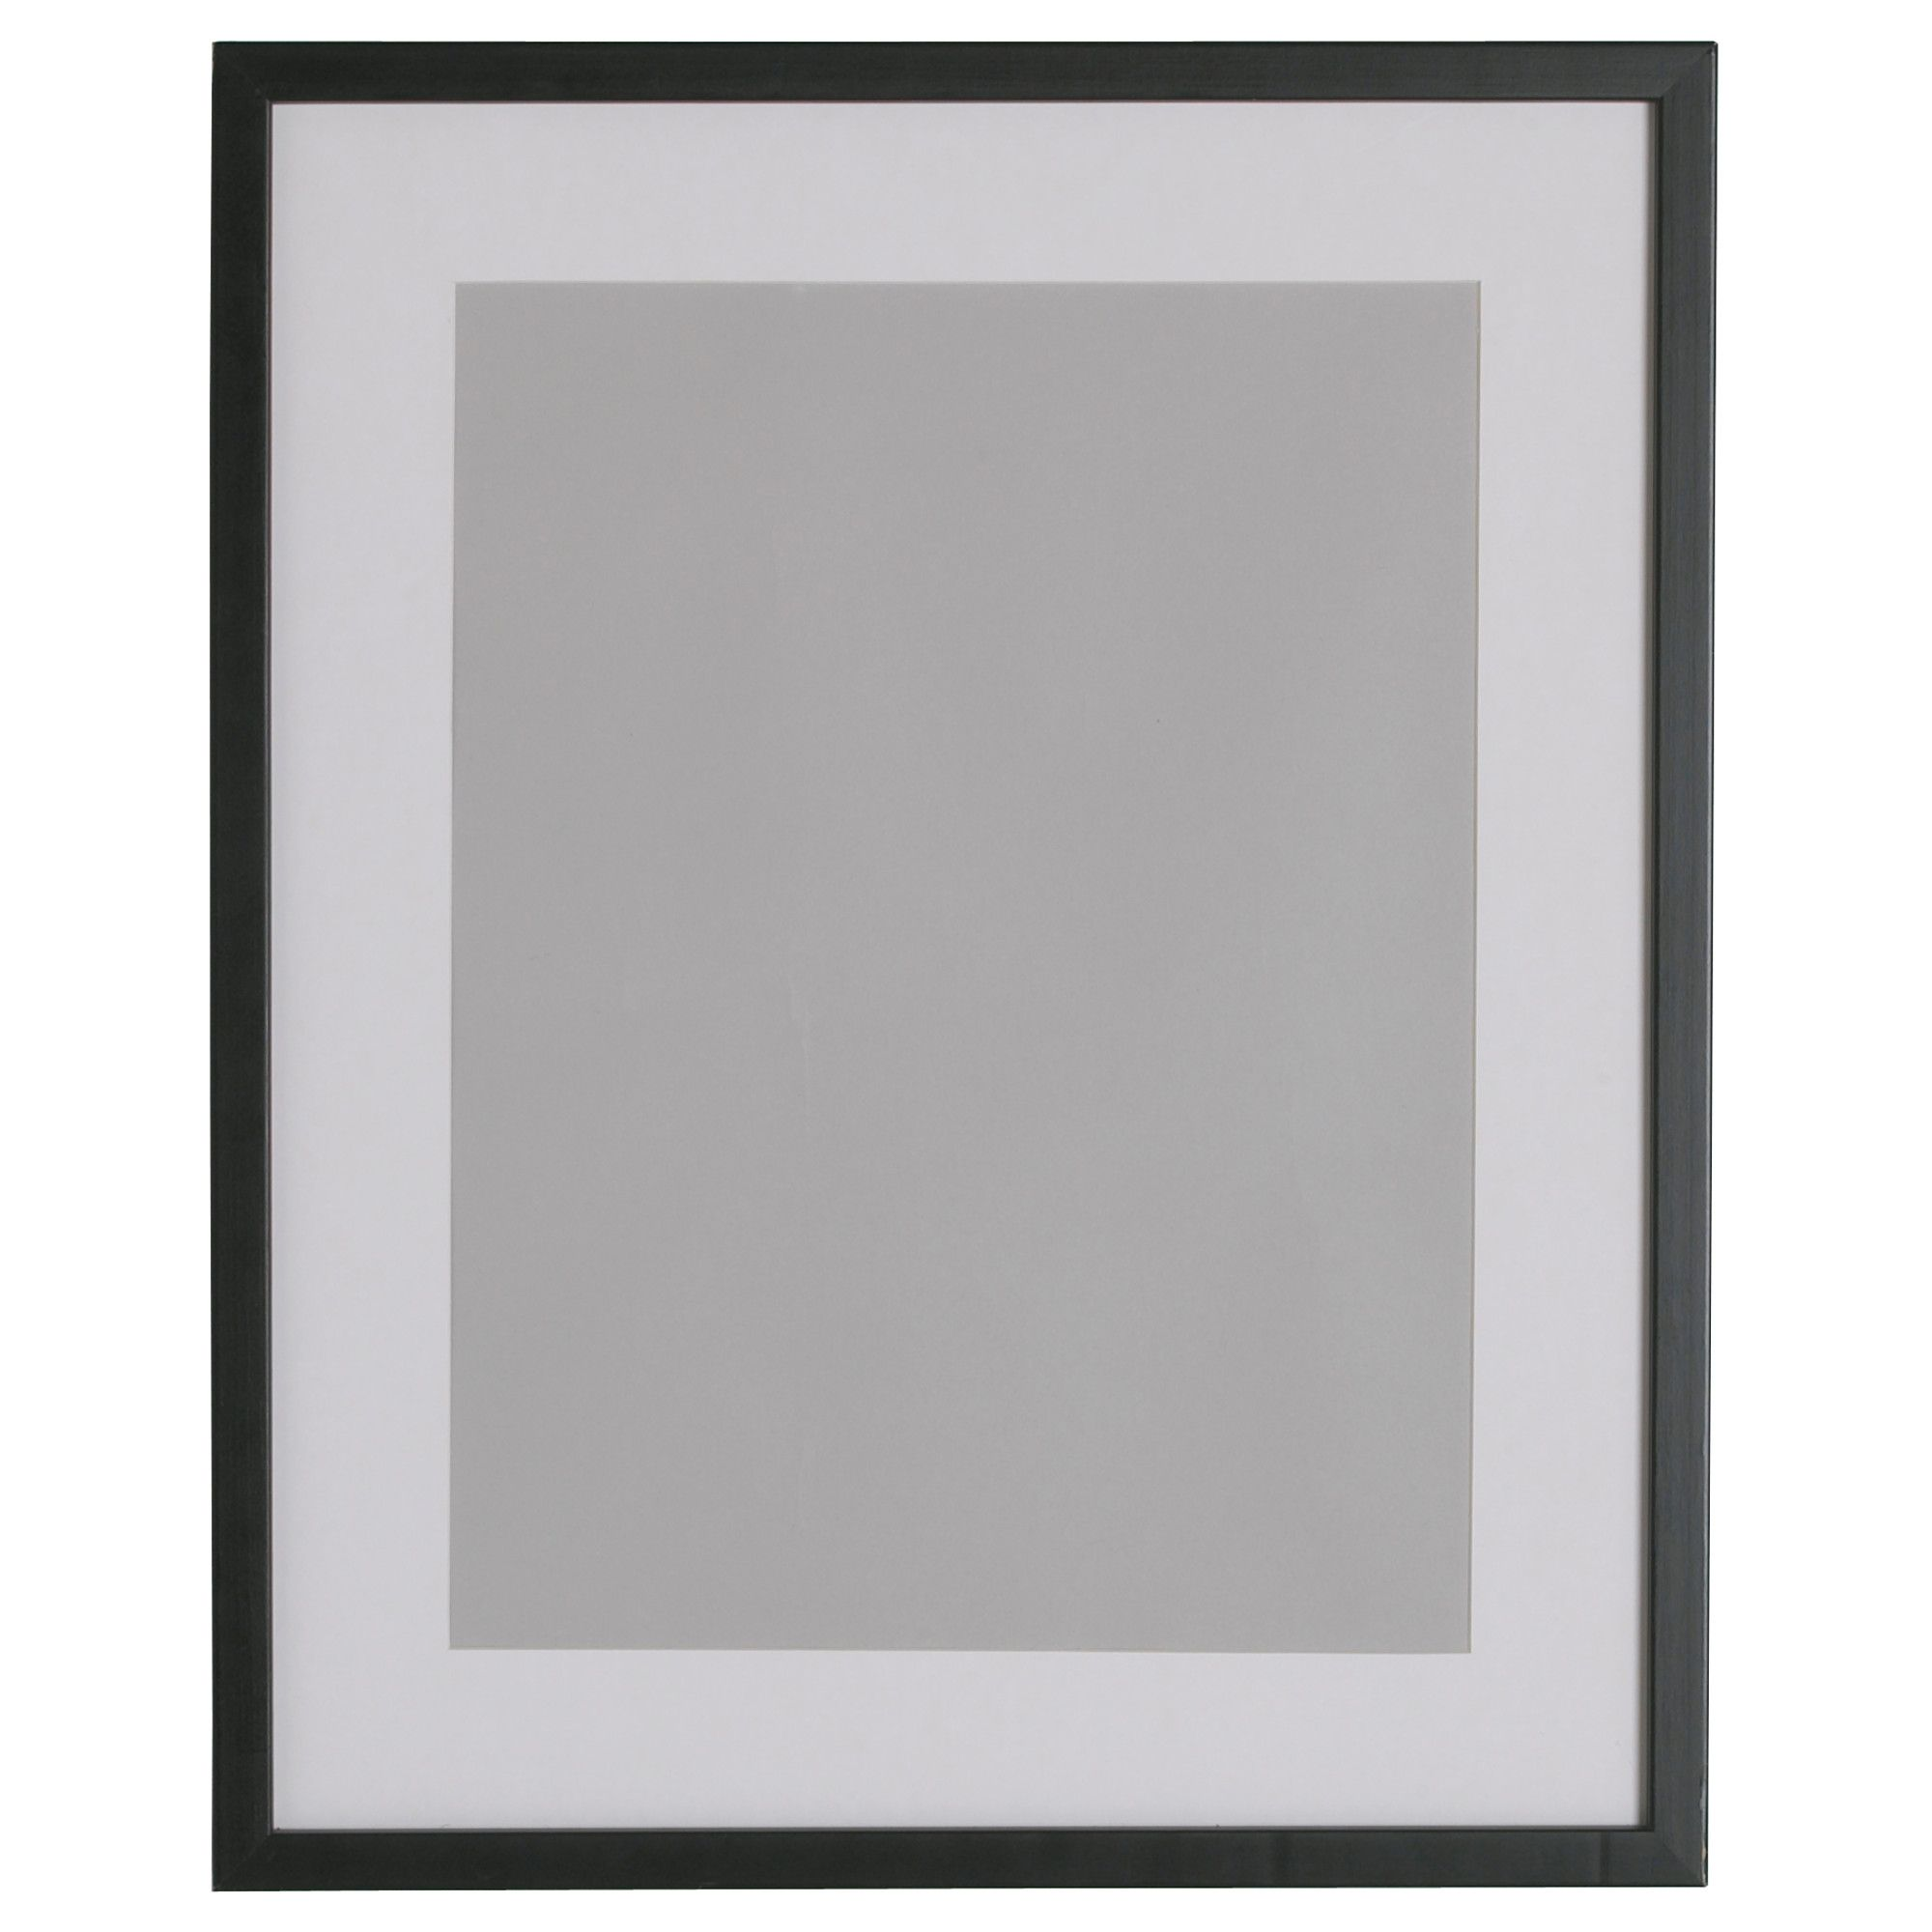 RIBBA Frame - black - IKEA $14.99 ... Frame I\'m considering using ...